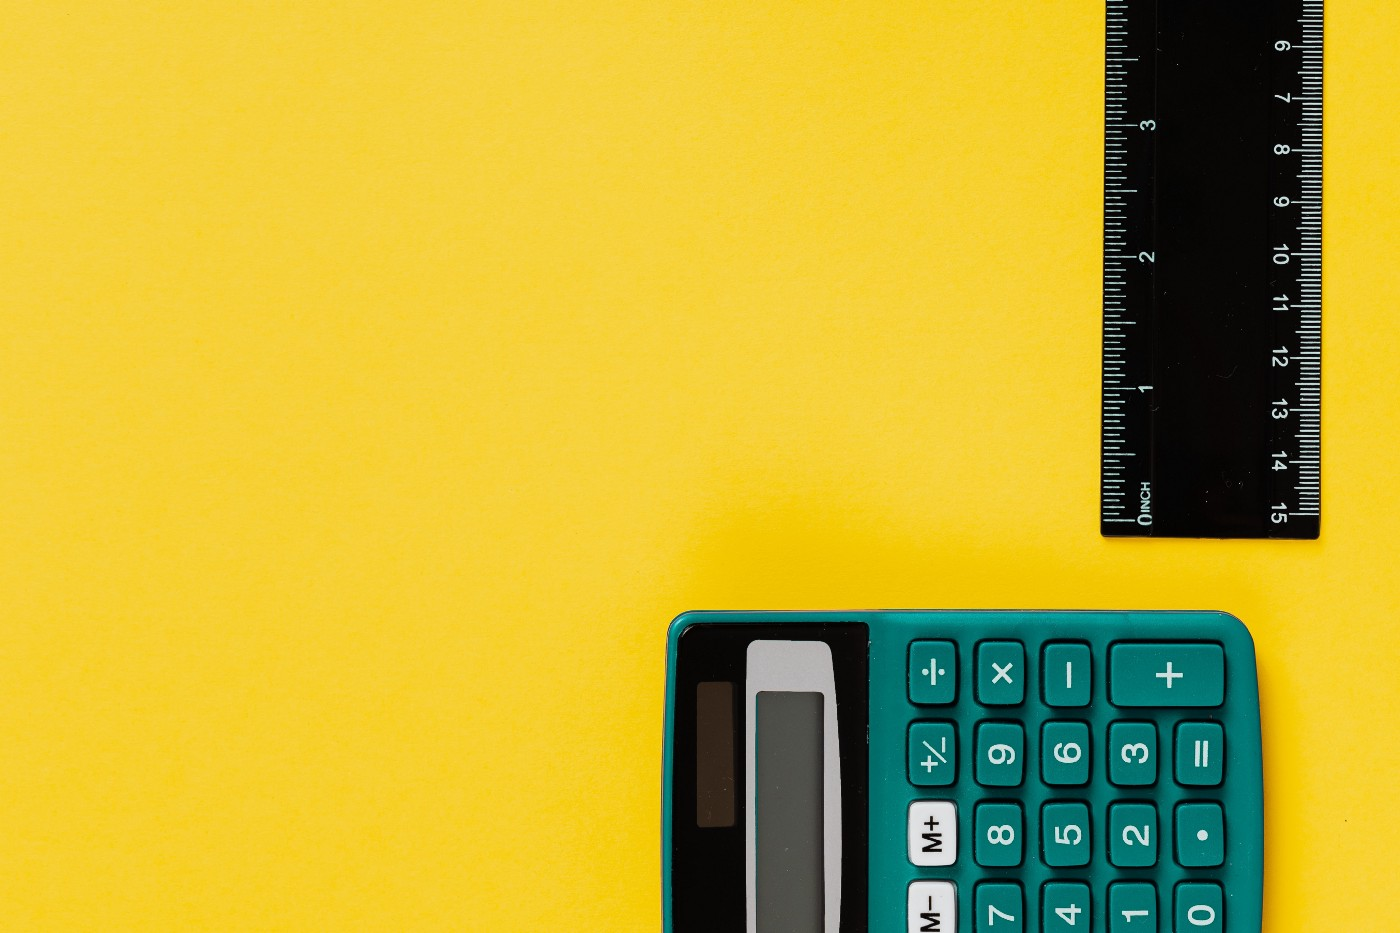 a calculator and a scale ruler